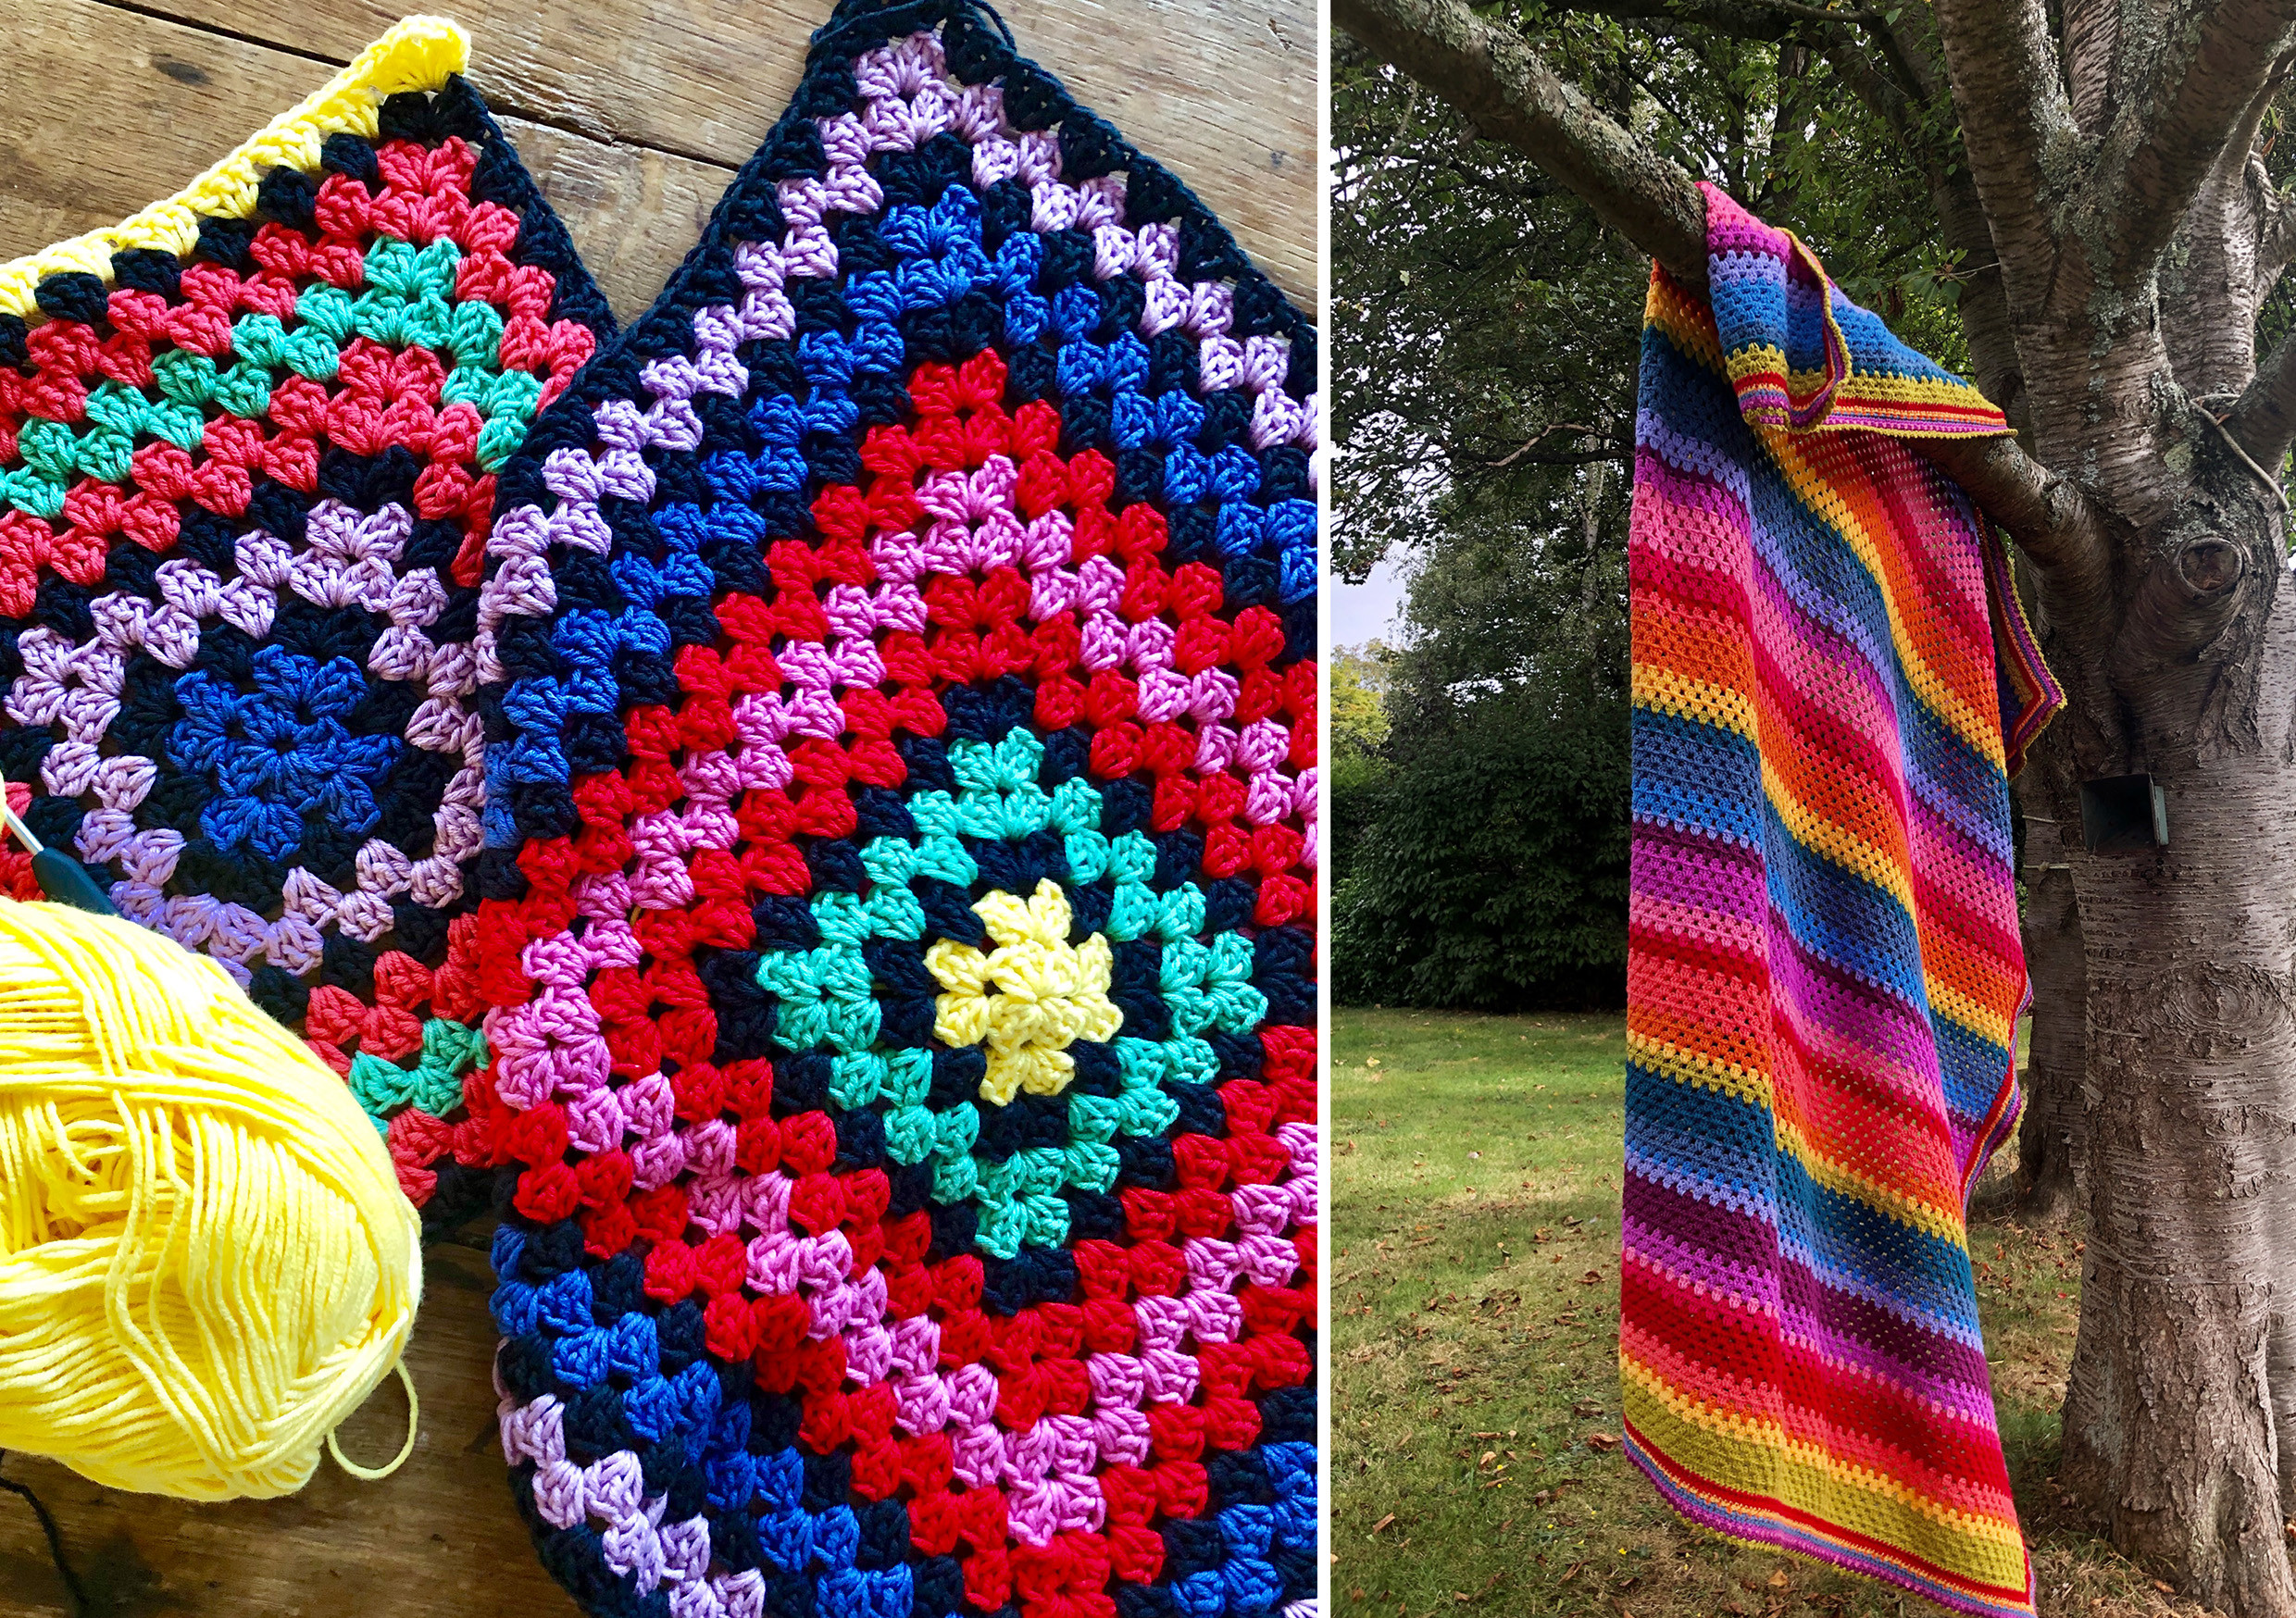 Learn to Crochet -  Tuesday 3rd March